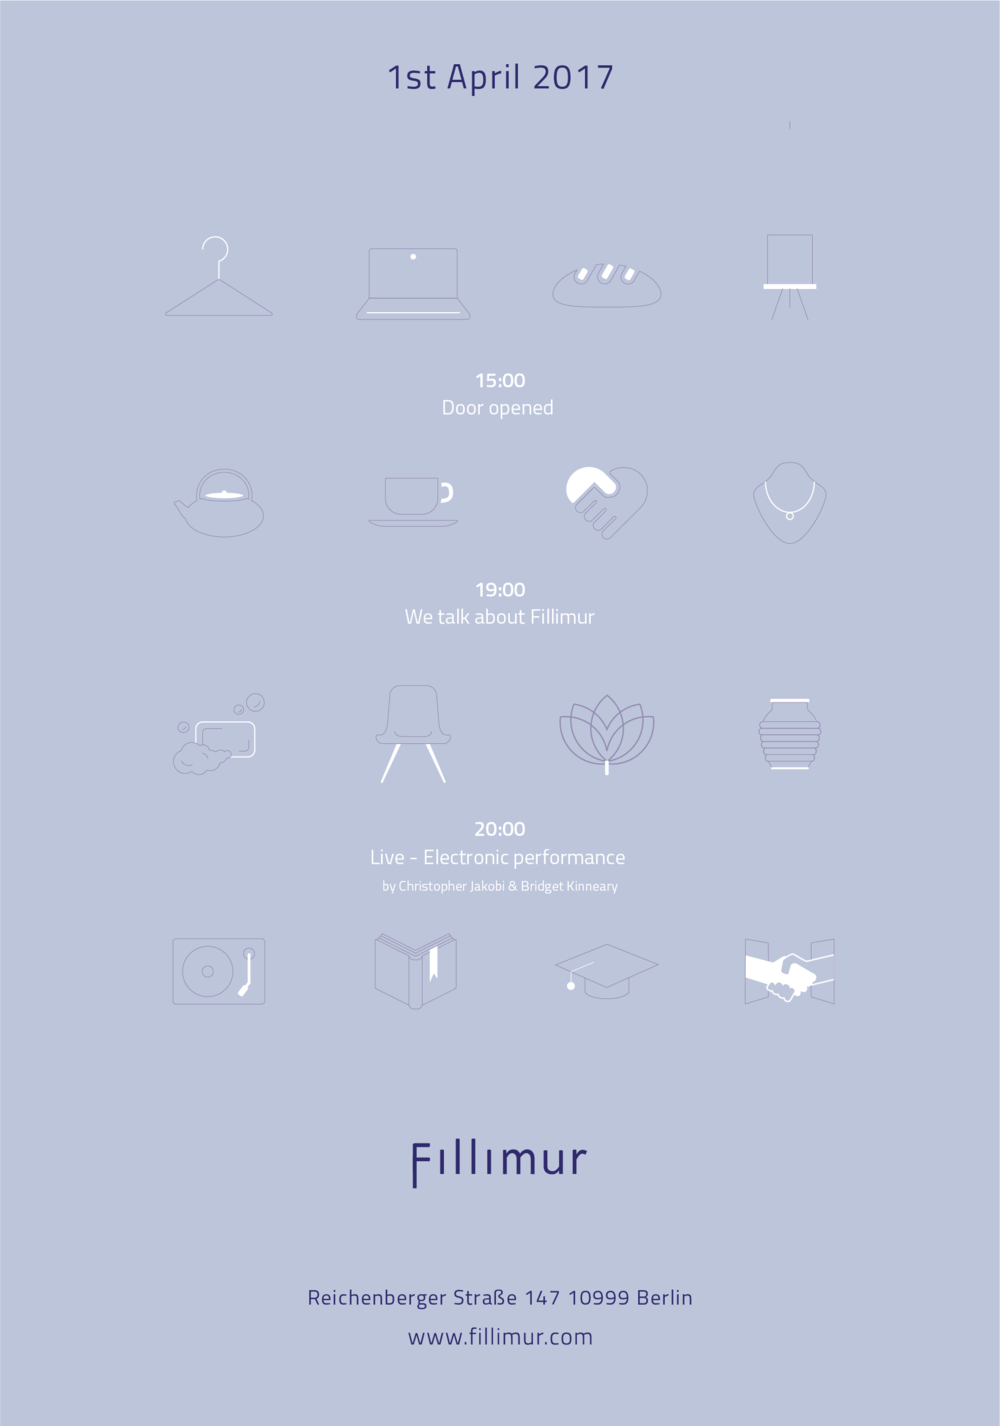 Come by Fillimur official launching party next Saturday 01/04/17  at  Fillimur — a Space connecting creatives Reichenberger Straße 147 10999 Berlin  Line up:  15:00 Door opened 19:00 We talk about Fillimur 20:00 Live - Electronic performance by Christopher Jakobi  Experimentalstudio Mitte-Nord  & Bridget Kinneary Our launching party finger foods are designed by  Nikamomektofood   Get your e-invitation at  www.fillimur.com   Fillimur, a Space powered by  DAMUR  GmbH Fillimur branding designed by  Guy Lee ,  http://www.guyisnotanartist.com